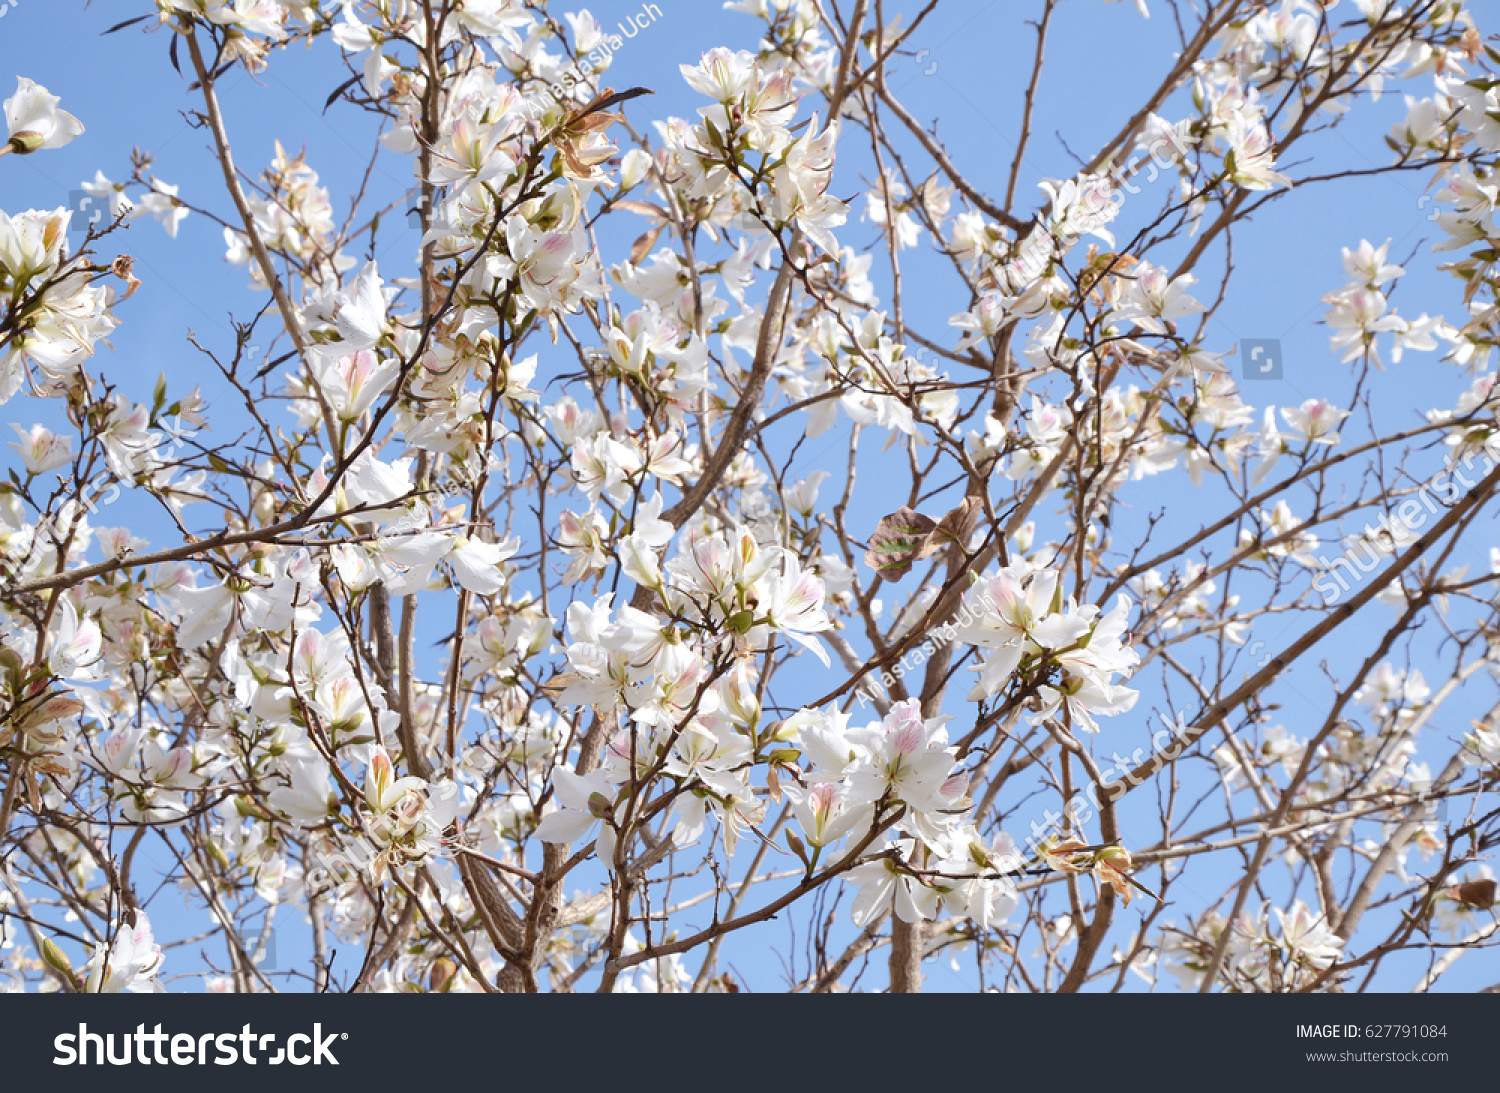 Blooming Tree With White Flowers In Israel Park Ez Canvas